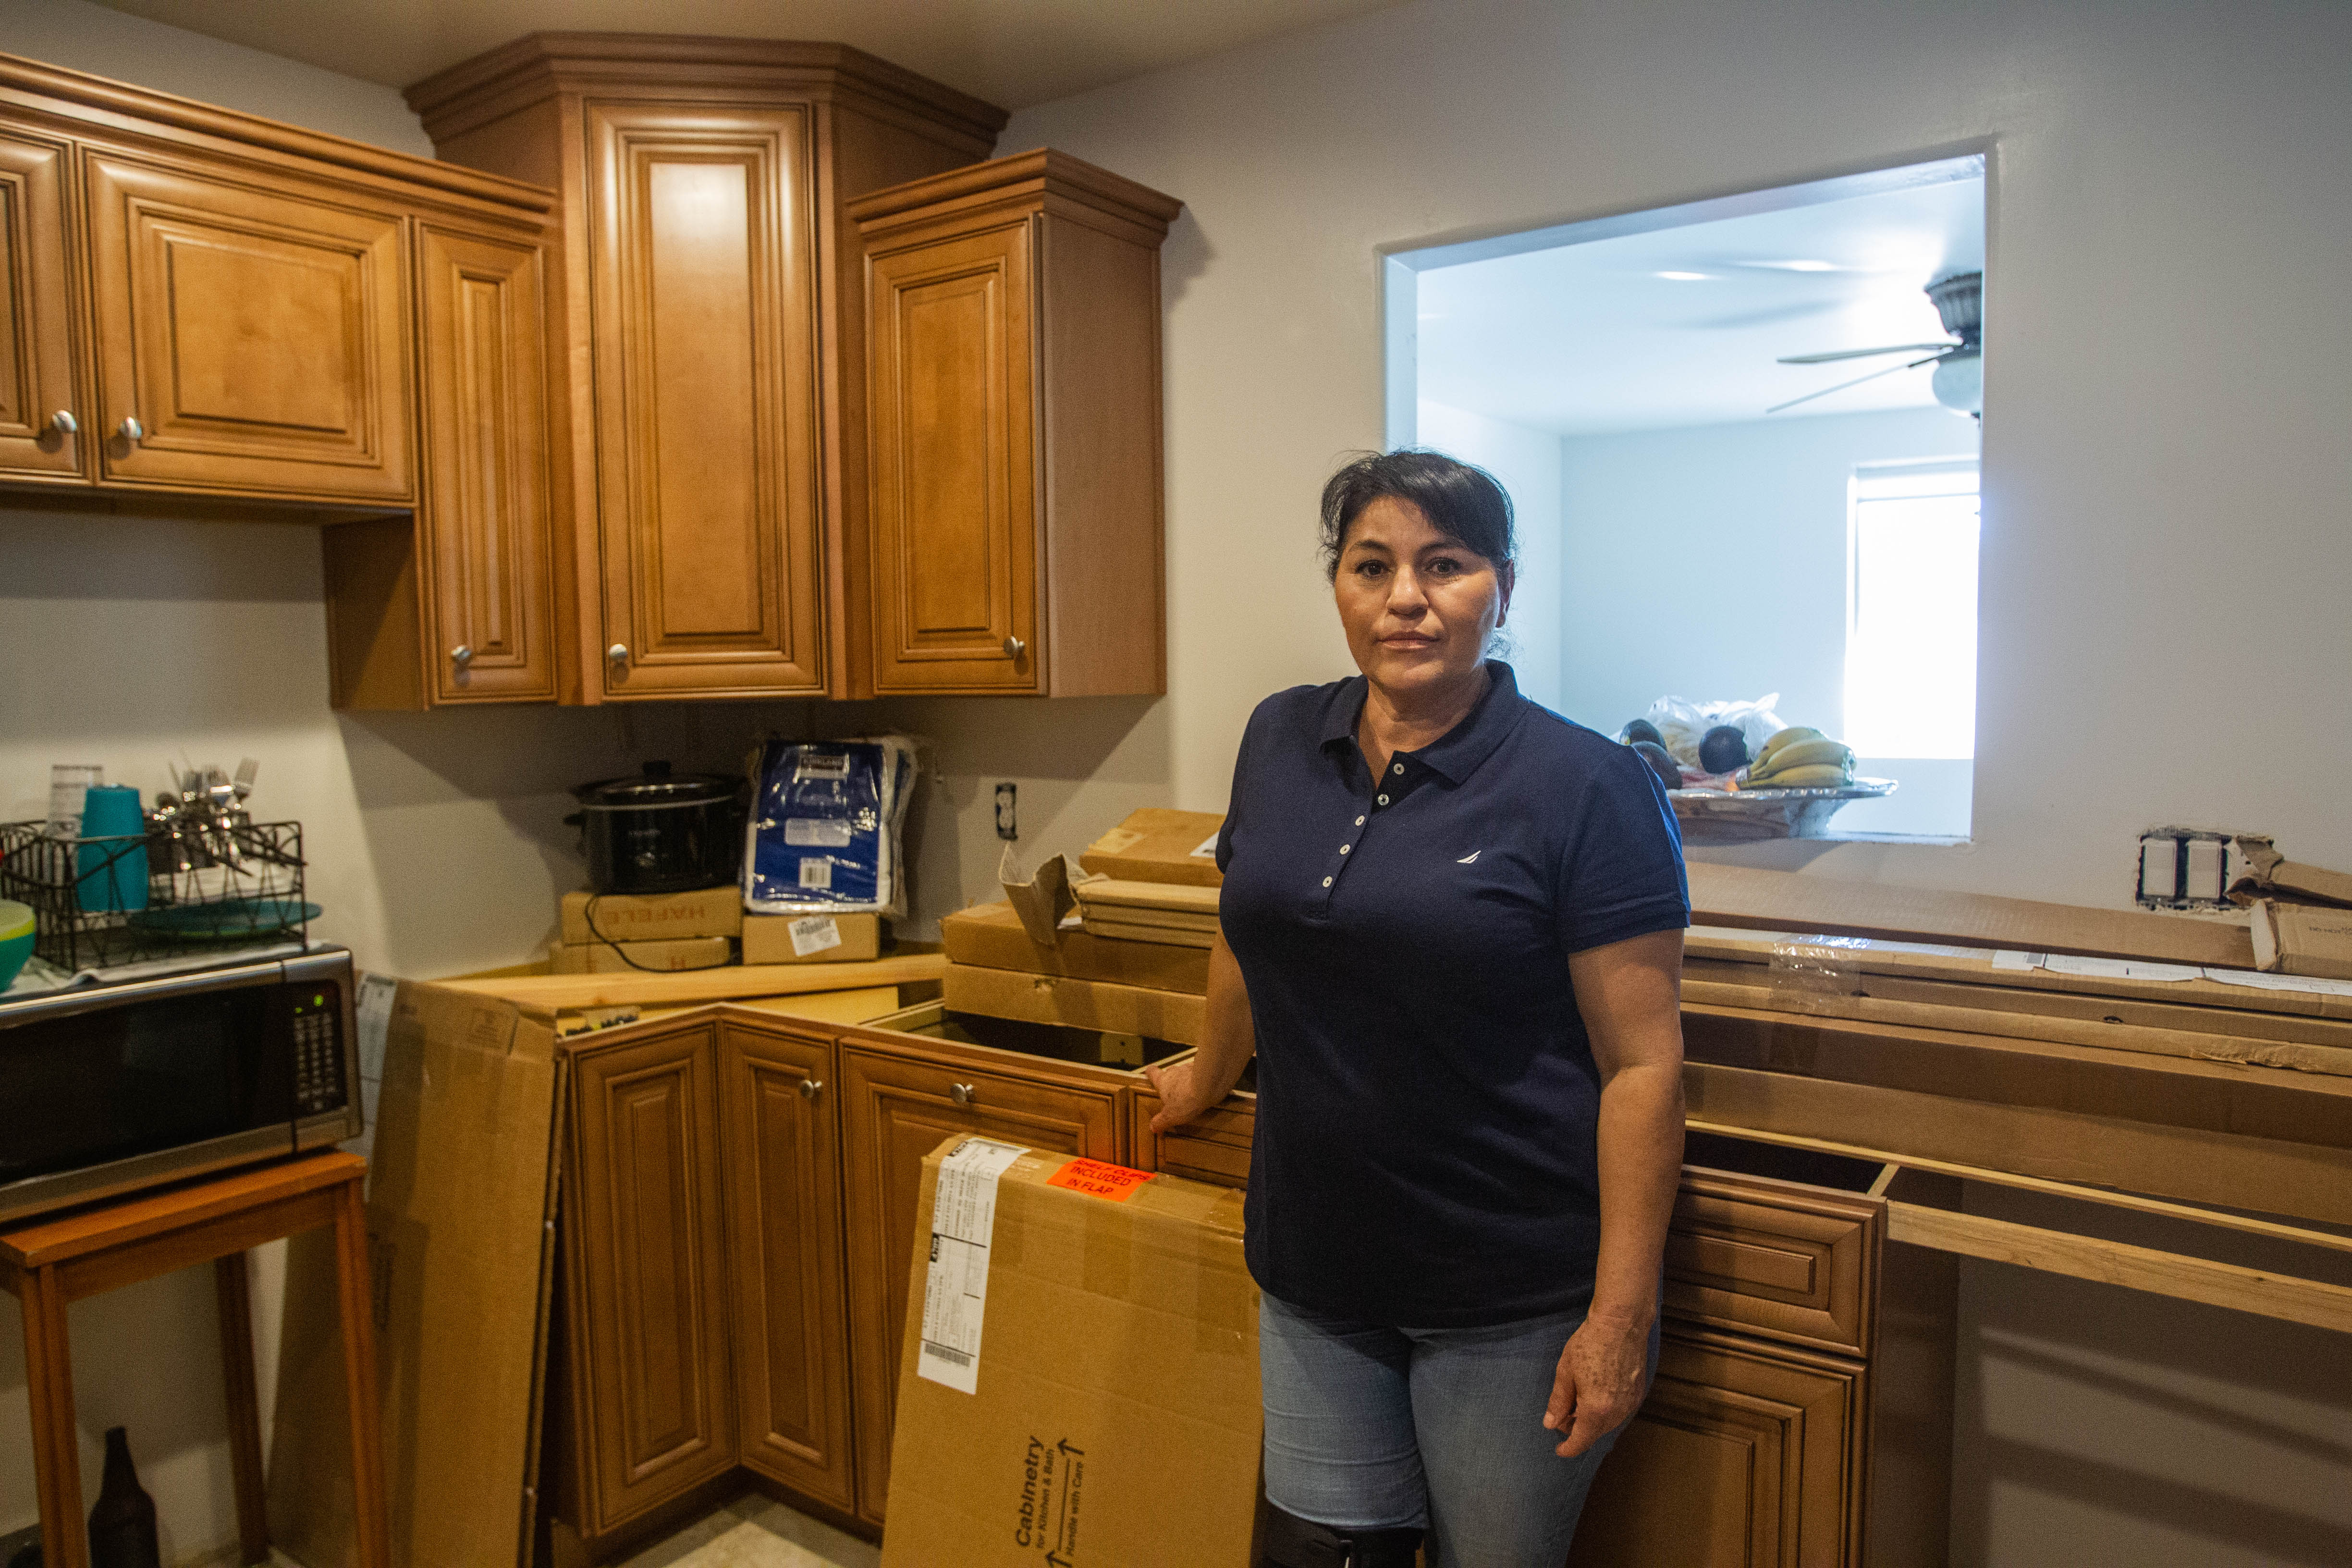 Home Depot Kitchen Remodel Turns Into 6 Month Ordeal For Arizona Family